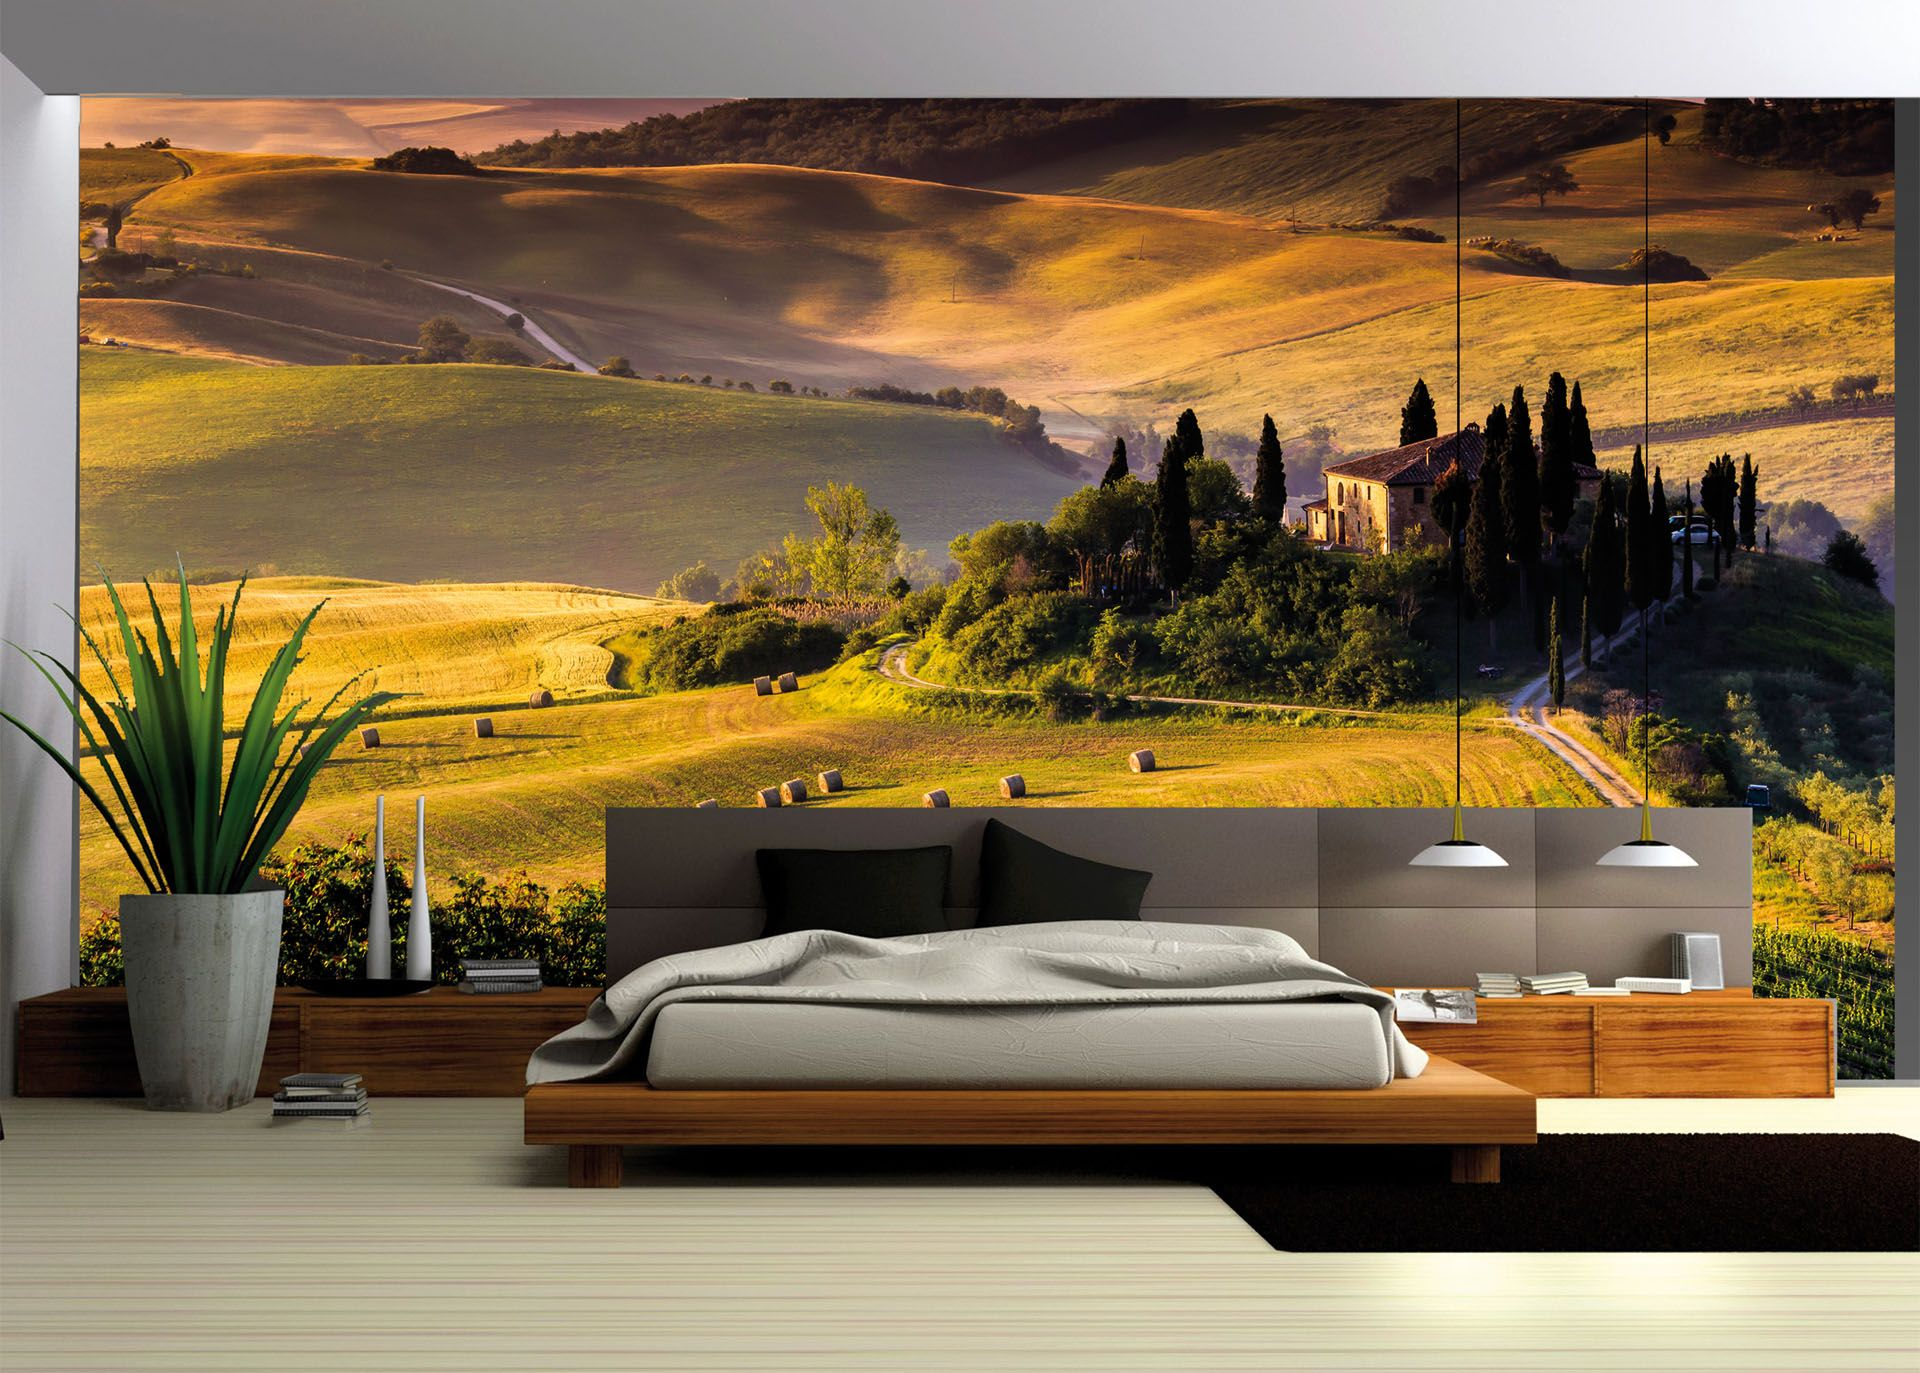 stilisiert vlies fototapete s m l xl xxl 3xl landschaft wiese berge natur 169 fototapete fur. Black Bedroom Furniture Sets. Home Design Ideas